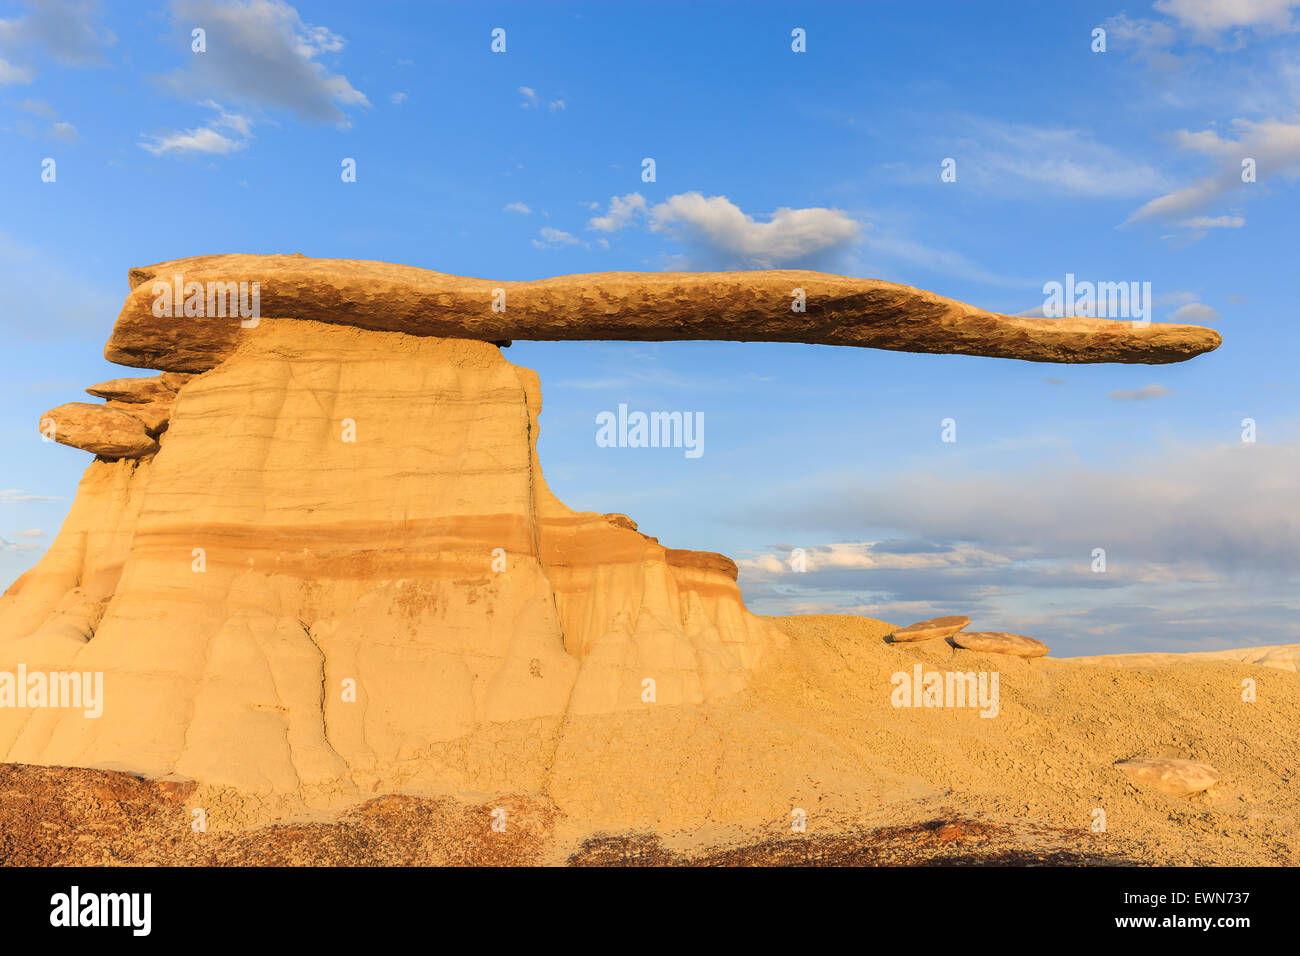 King of Wings in the Bisti Wilderness, New Mexico, USA - Stock Image